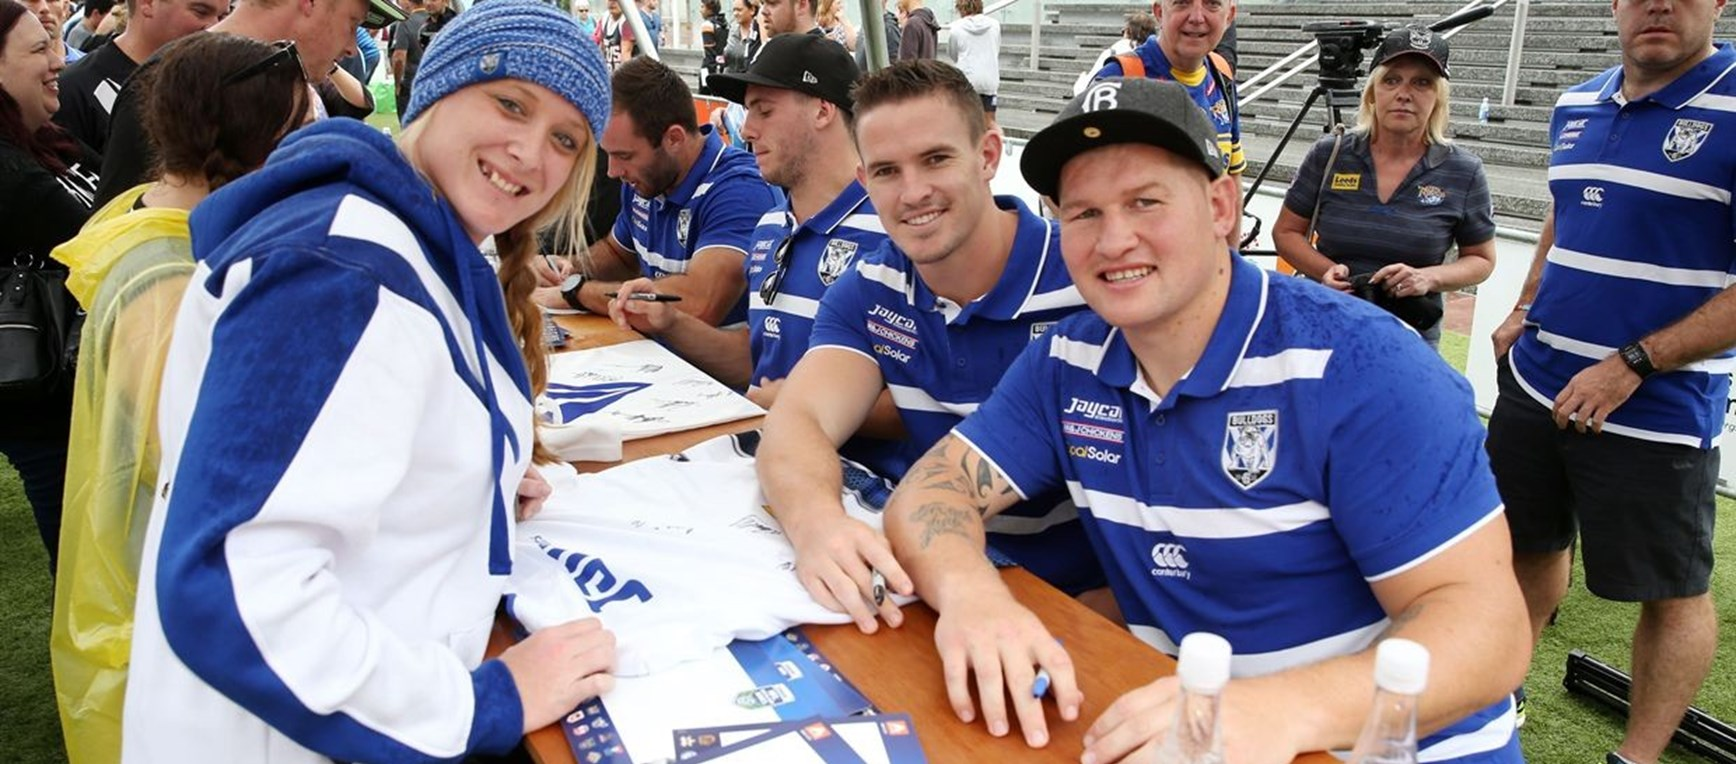 GALLERY: Aotea Square Fan Day